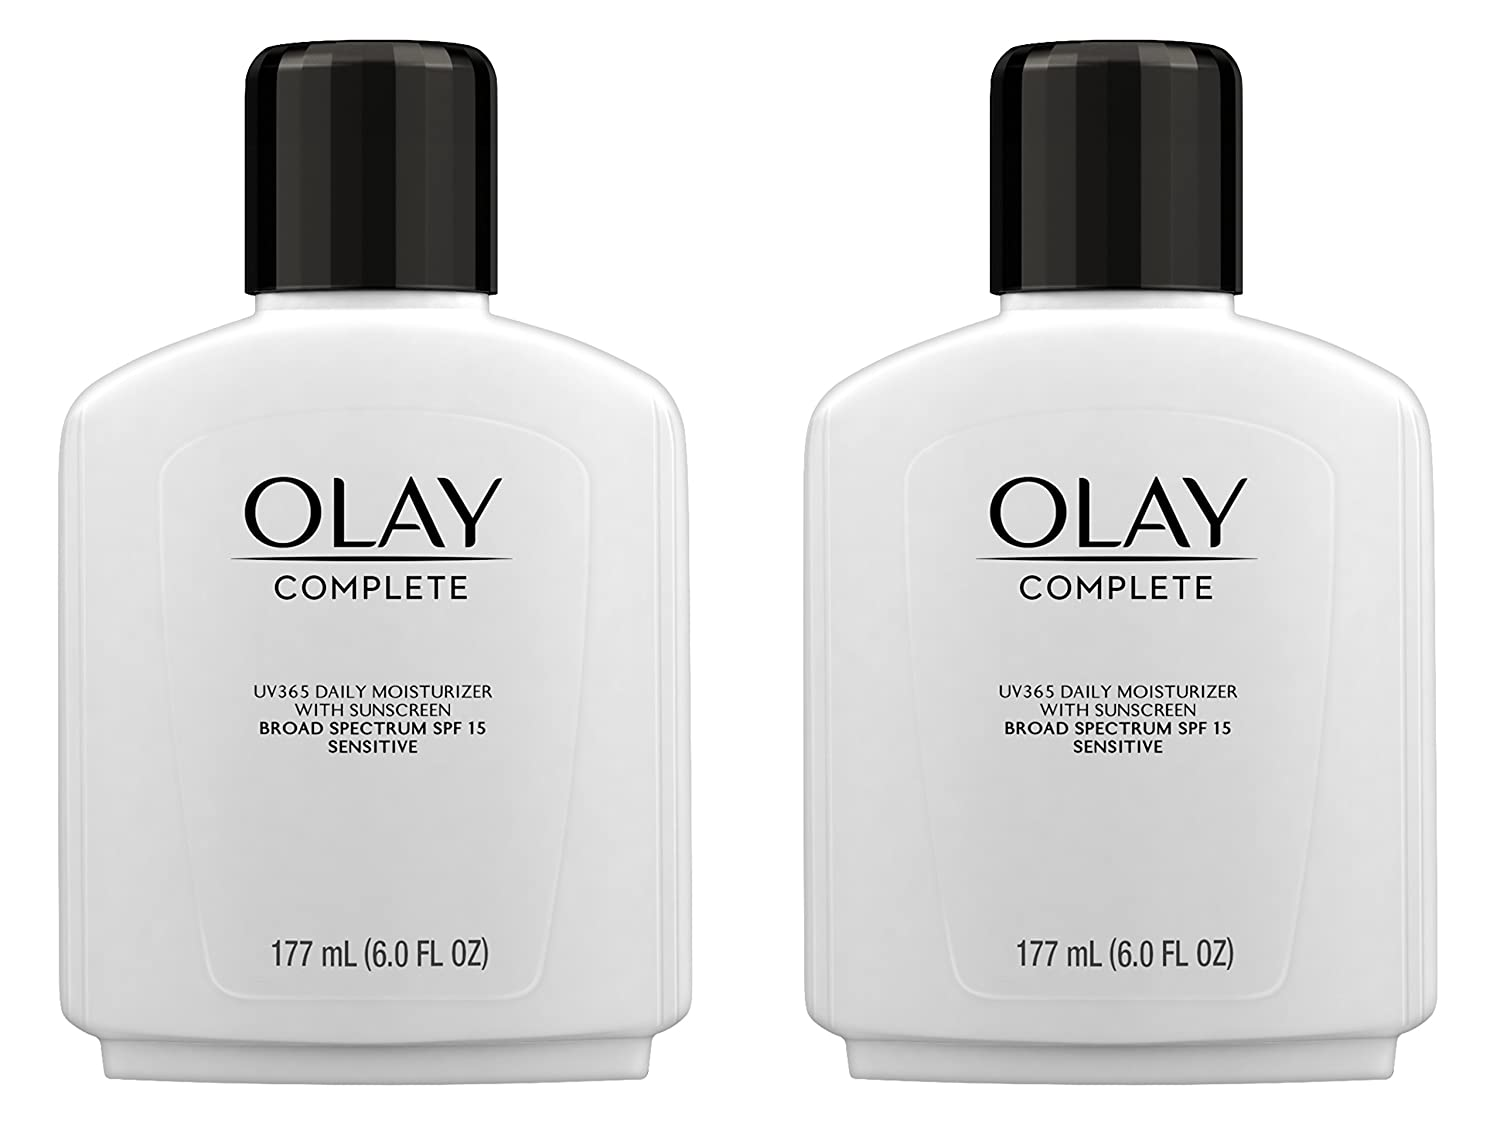 Olay Complete Lotion All Day Moisturizer with SPF 15 for Sensitive Skin, 6.0 fl oz (Pack of 2) P&G NA